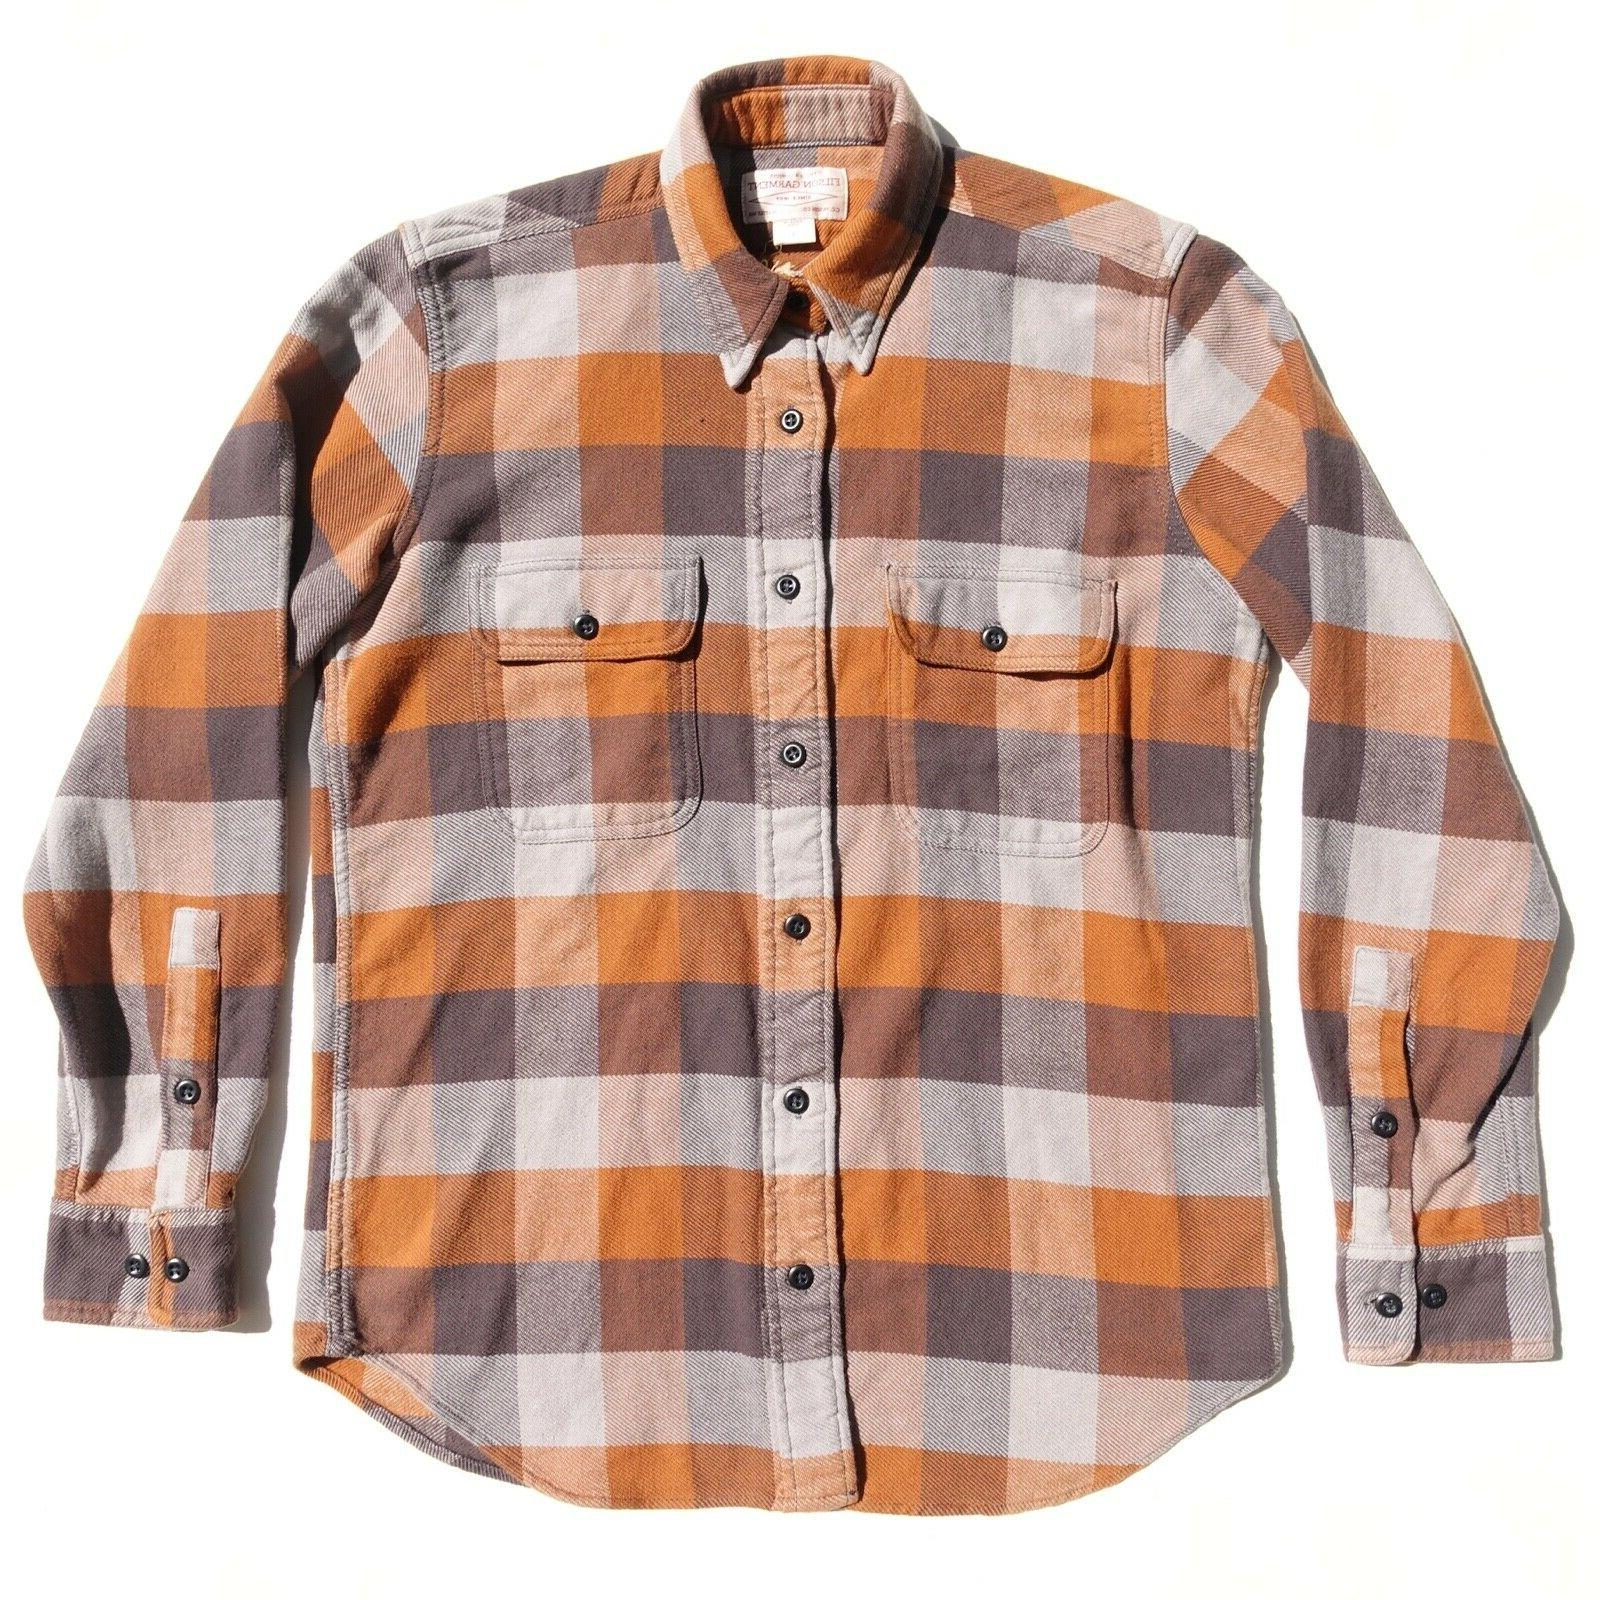 new with tags flannel work shirt mens